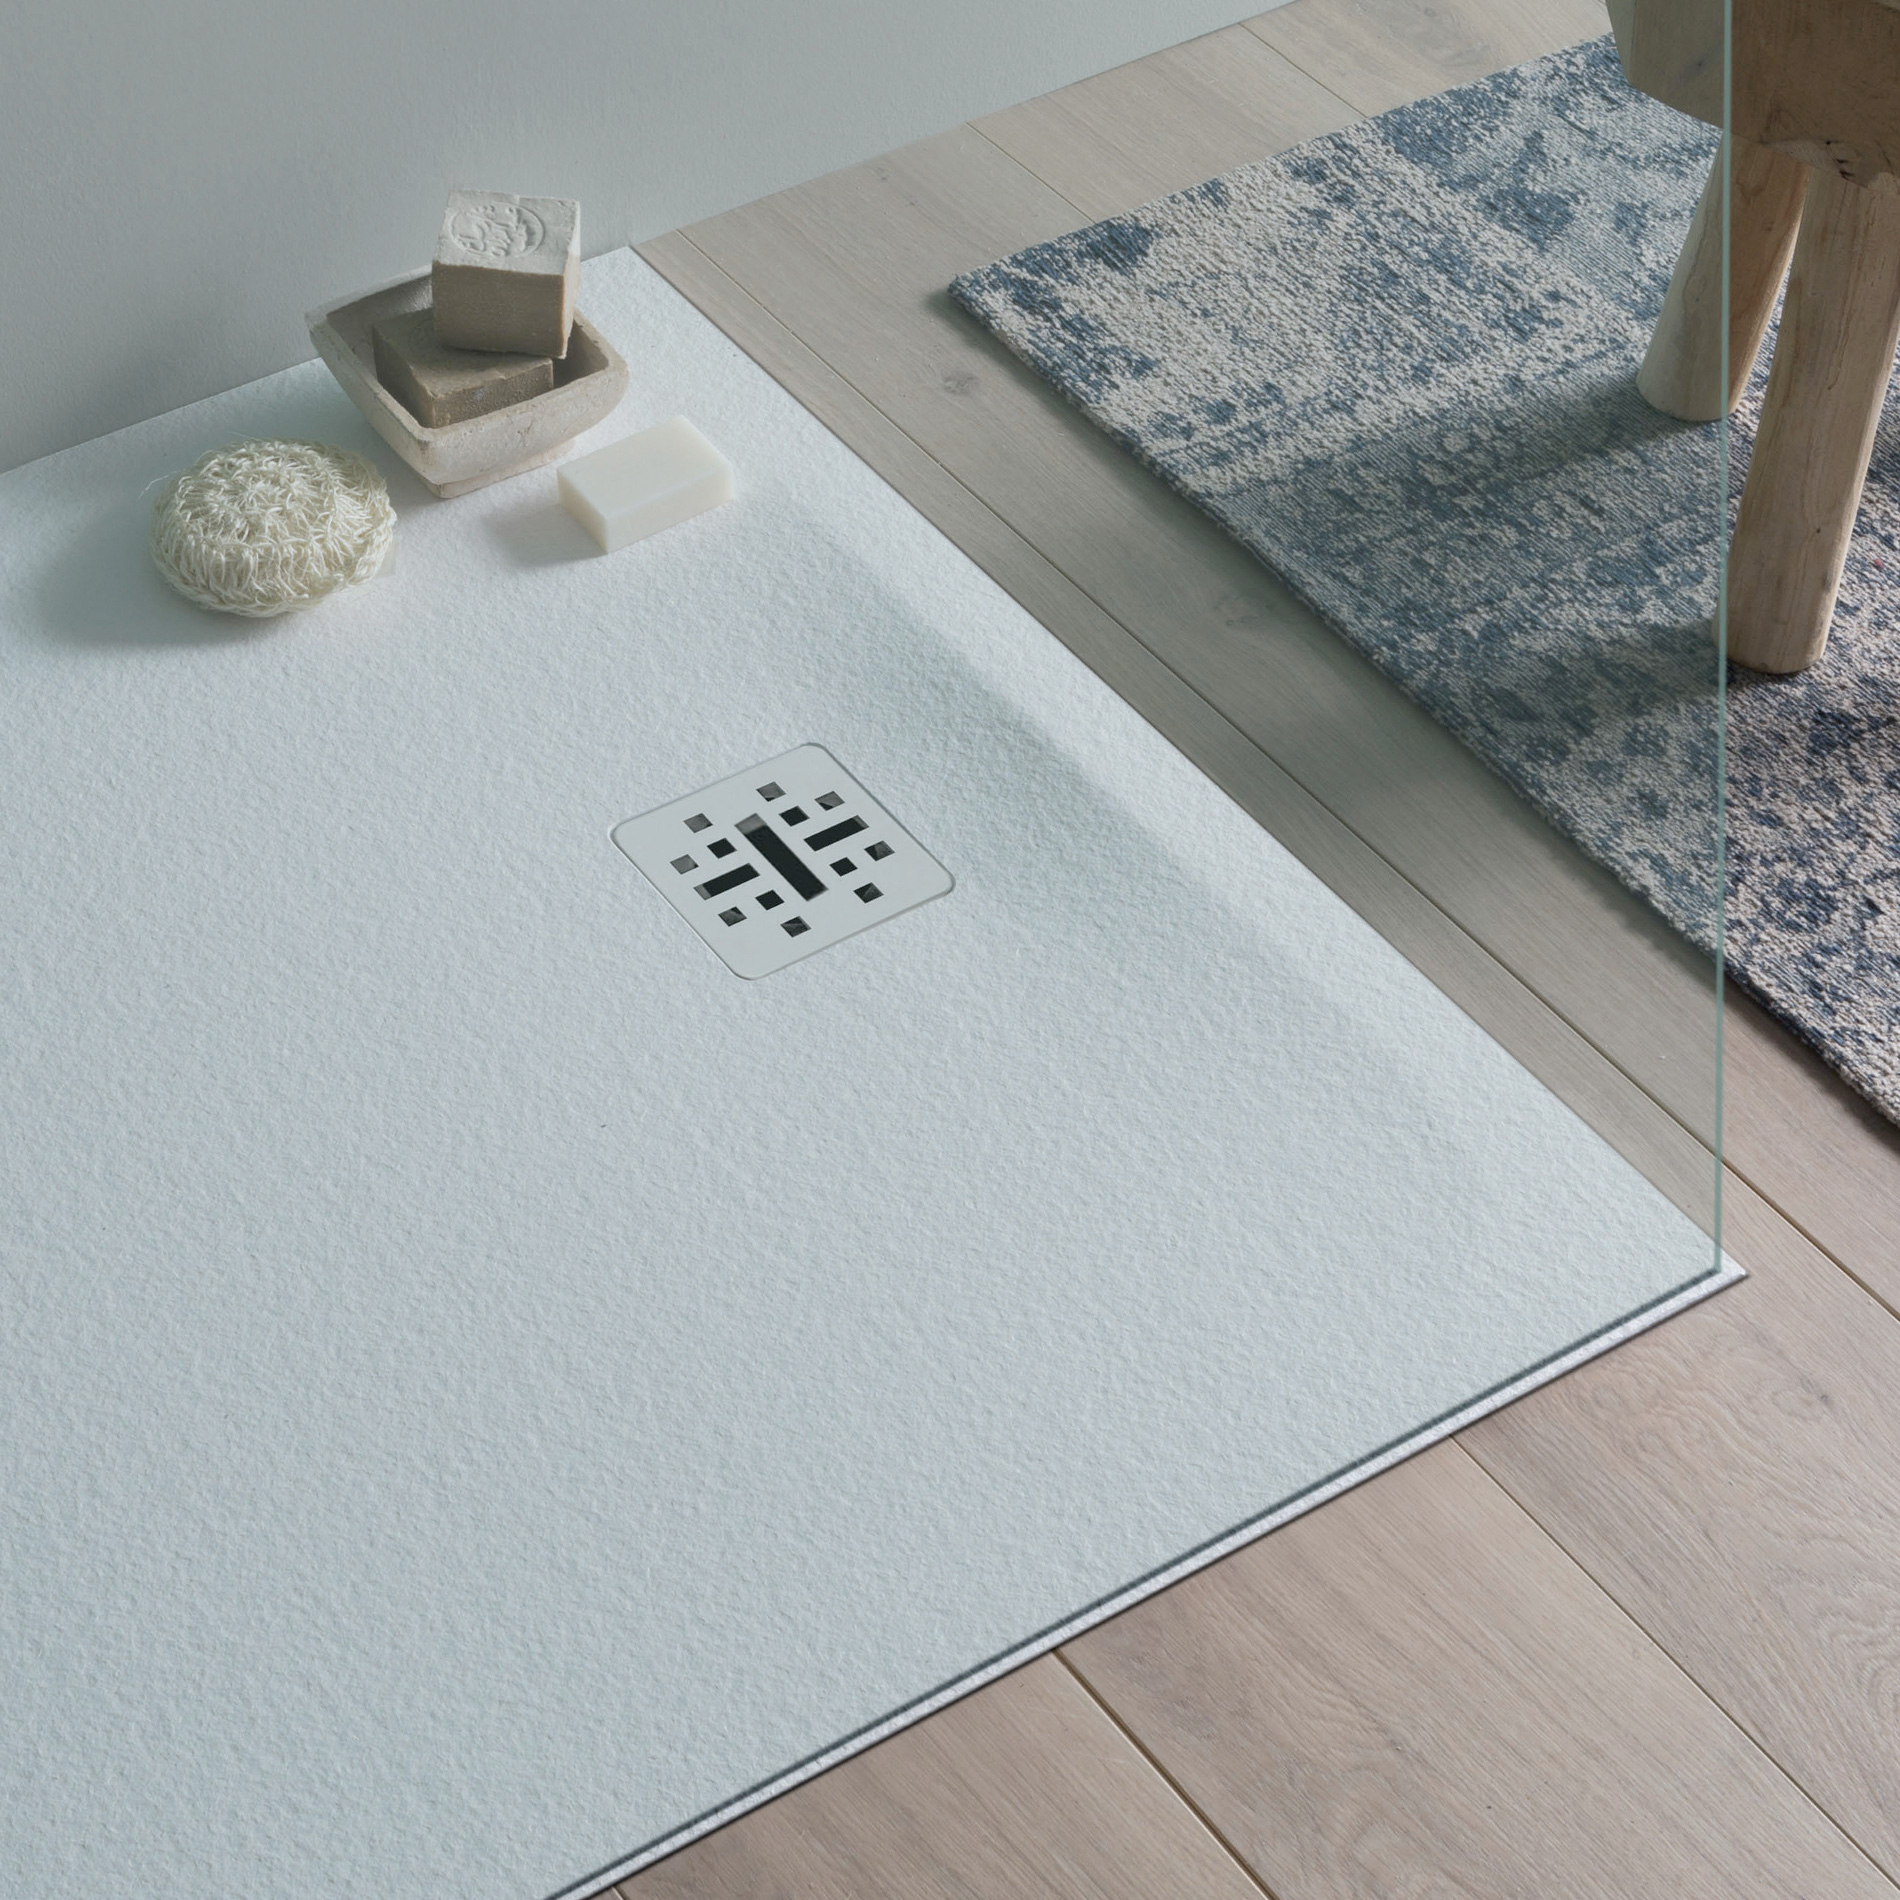 Nicos-International-home-products-Ceramiche-Globo-shower-tray-2